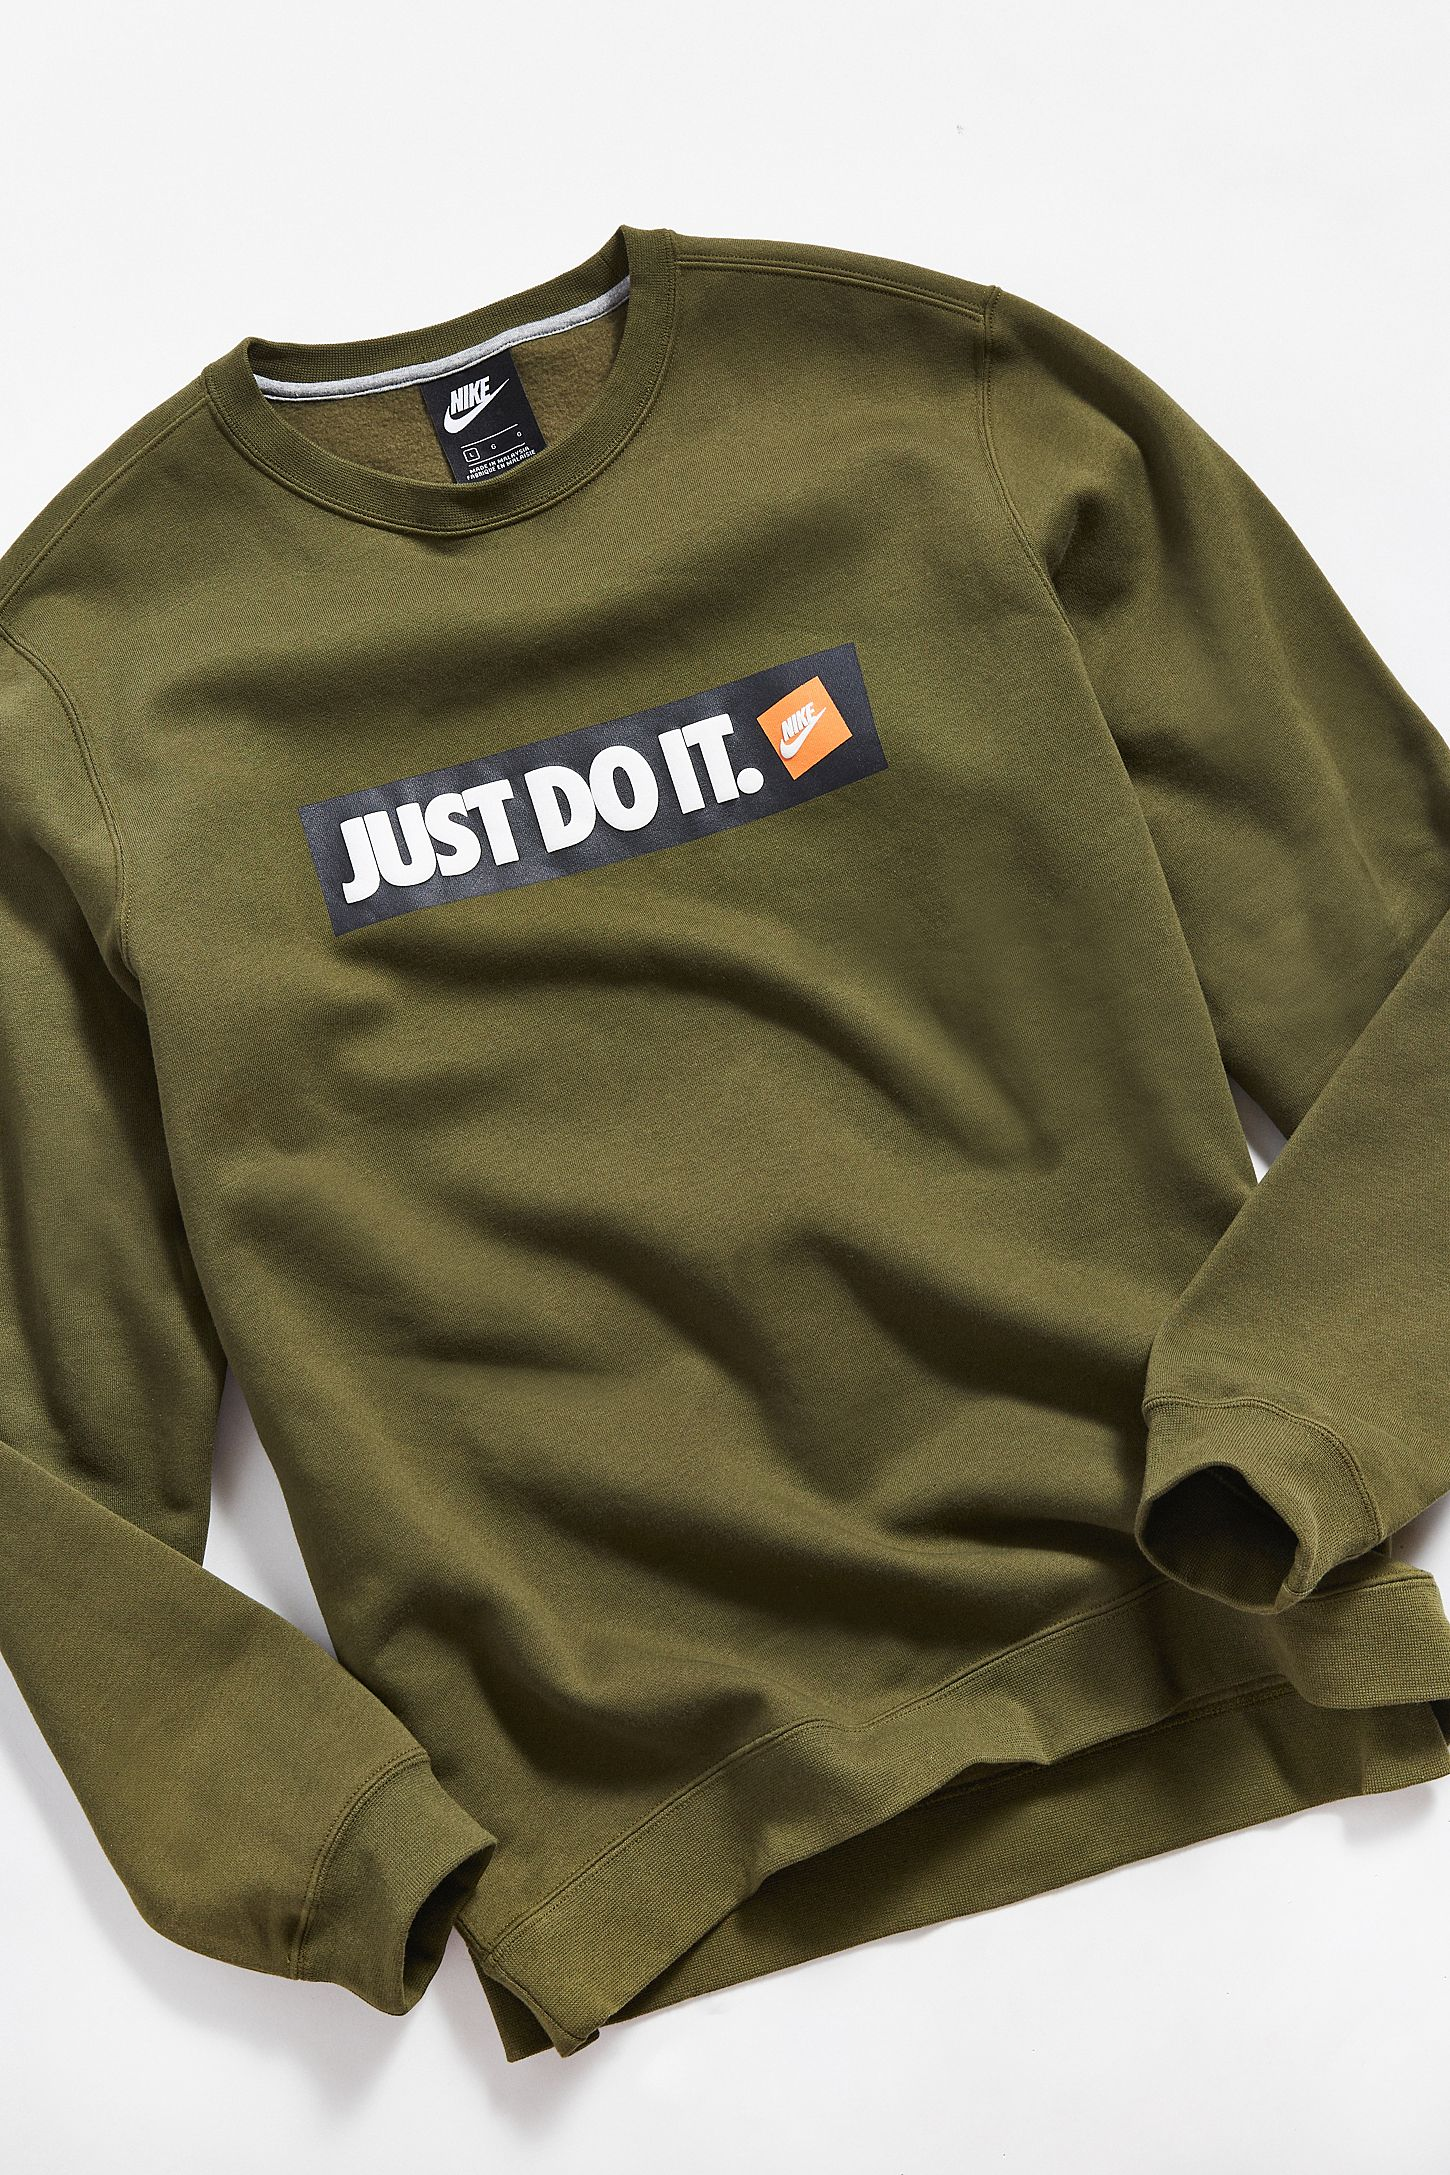 aa14373f Nike Just Do It Crew-Neck Sweatshirt | Urban Outfitters